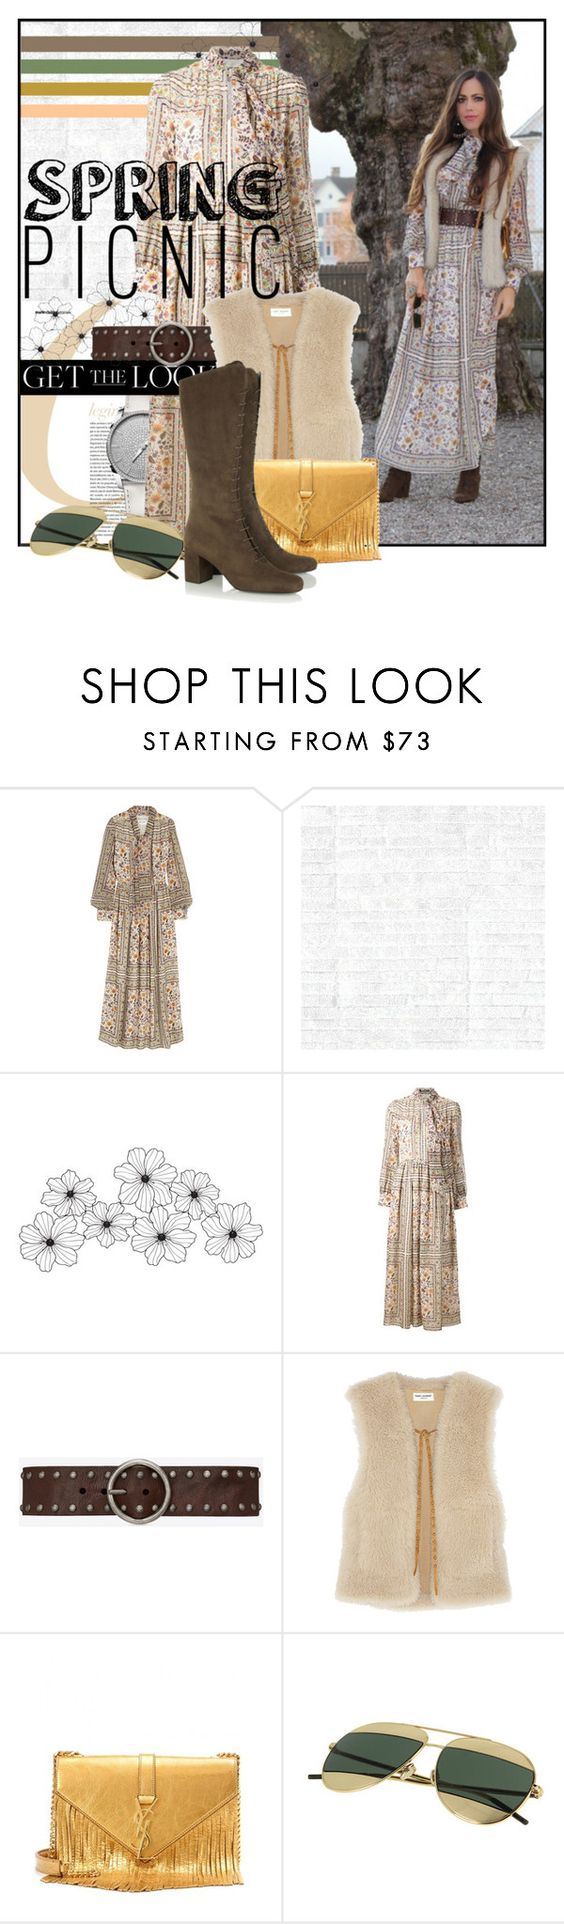 """Spring Picnic"" by sandrascloset ❤ liked on Polyvore featuring Yves Saint Laurent and Osborne & Little"